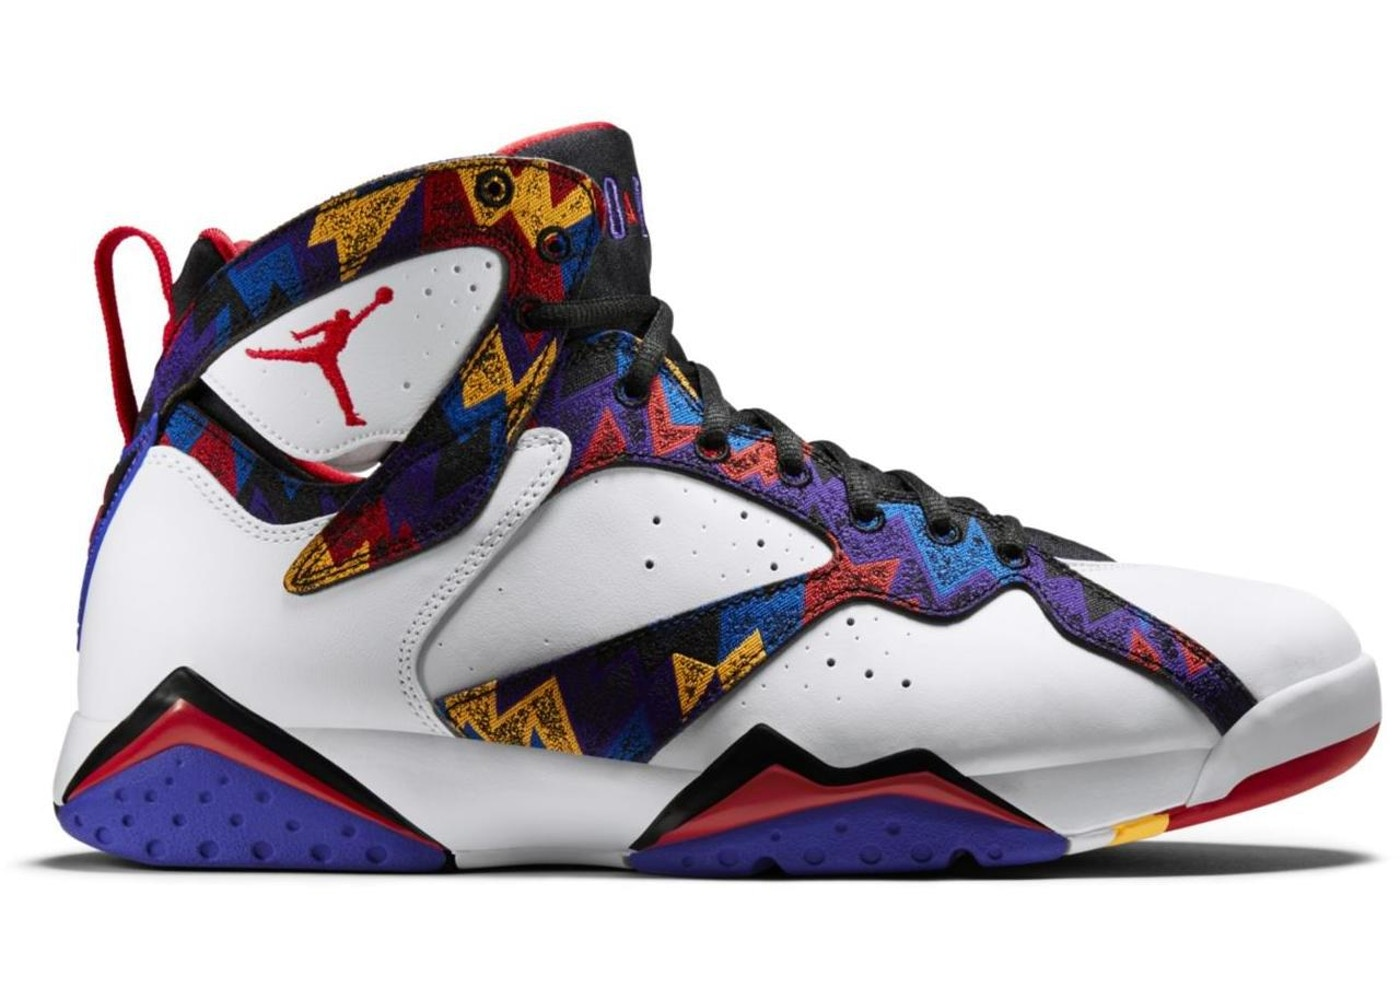 ed81f240d733d1 Jordan 7 Retro Nothing But Net - 304775-142